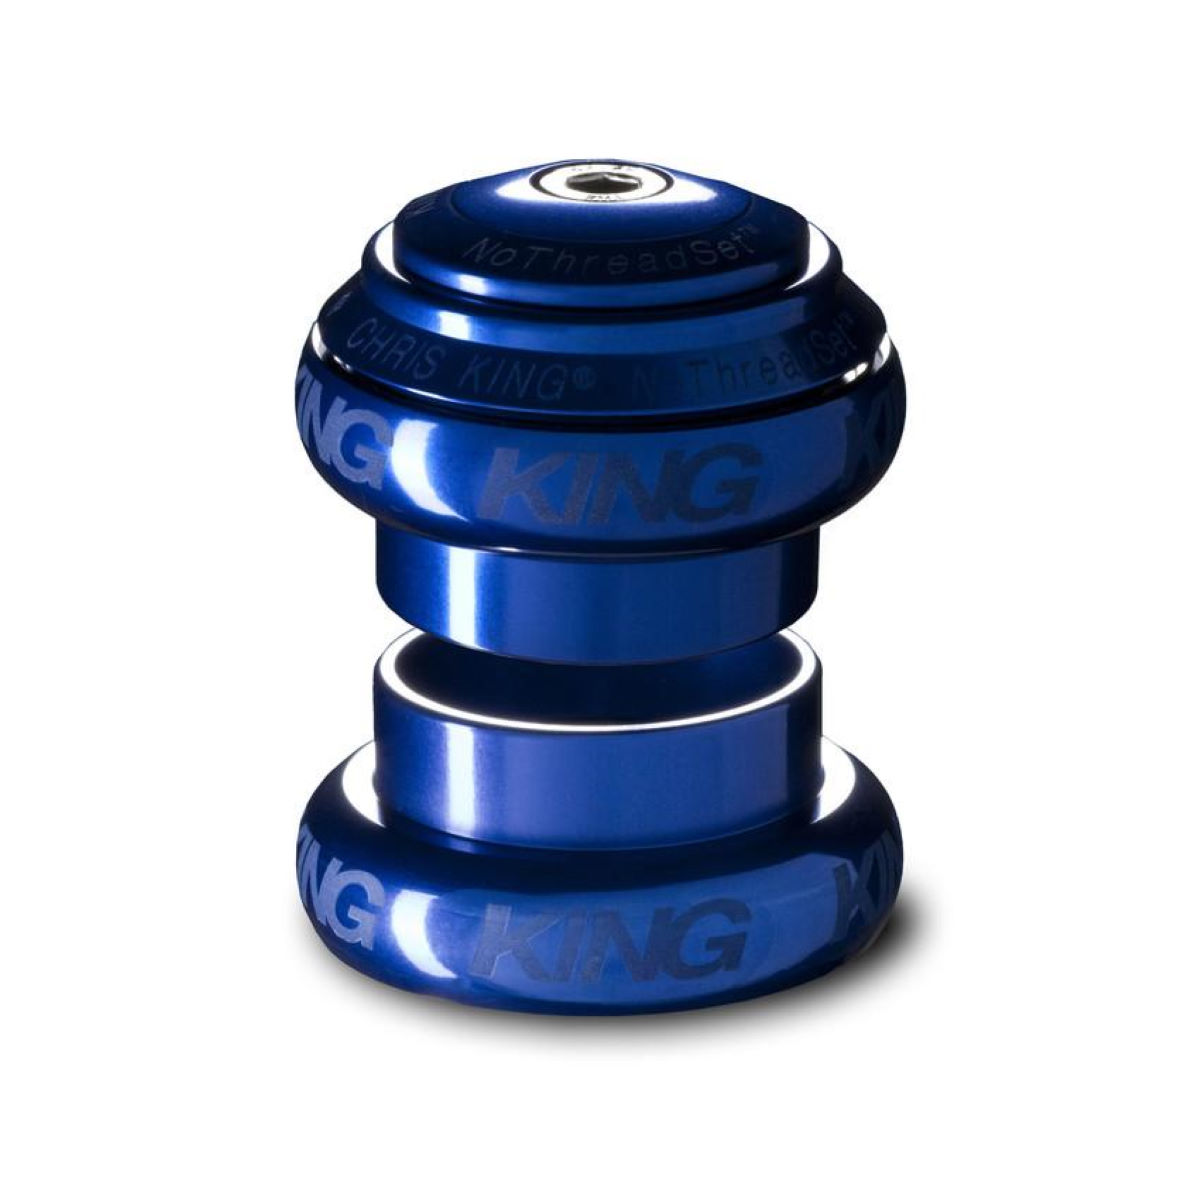 Jeu de direction Chris King No Threadset 1 1/8 pouce (alliage) - 1 1/8'' Bleu Jeux de direction